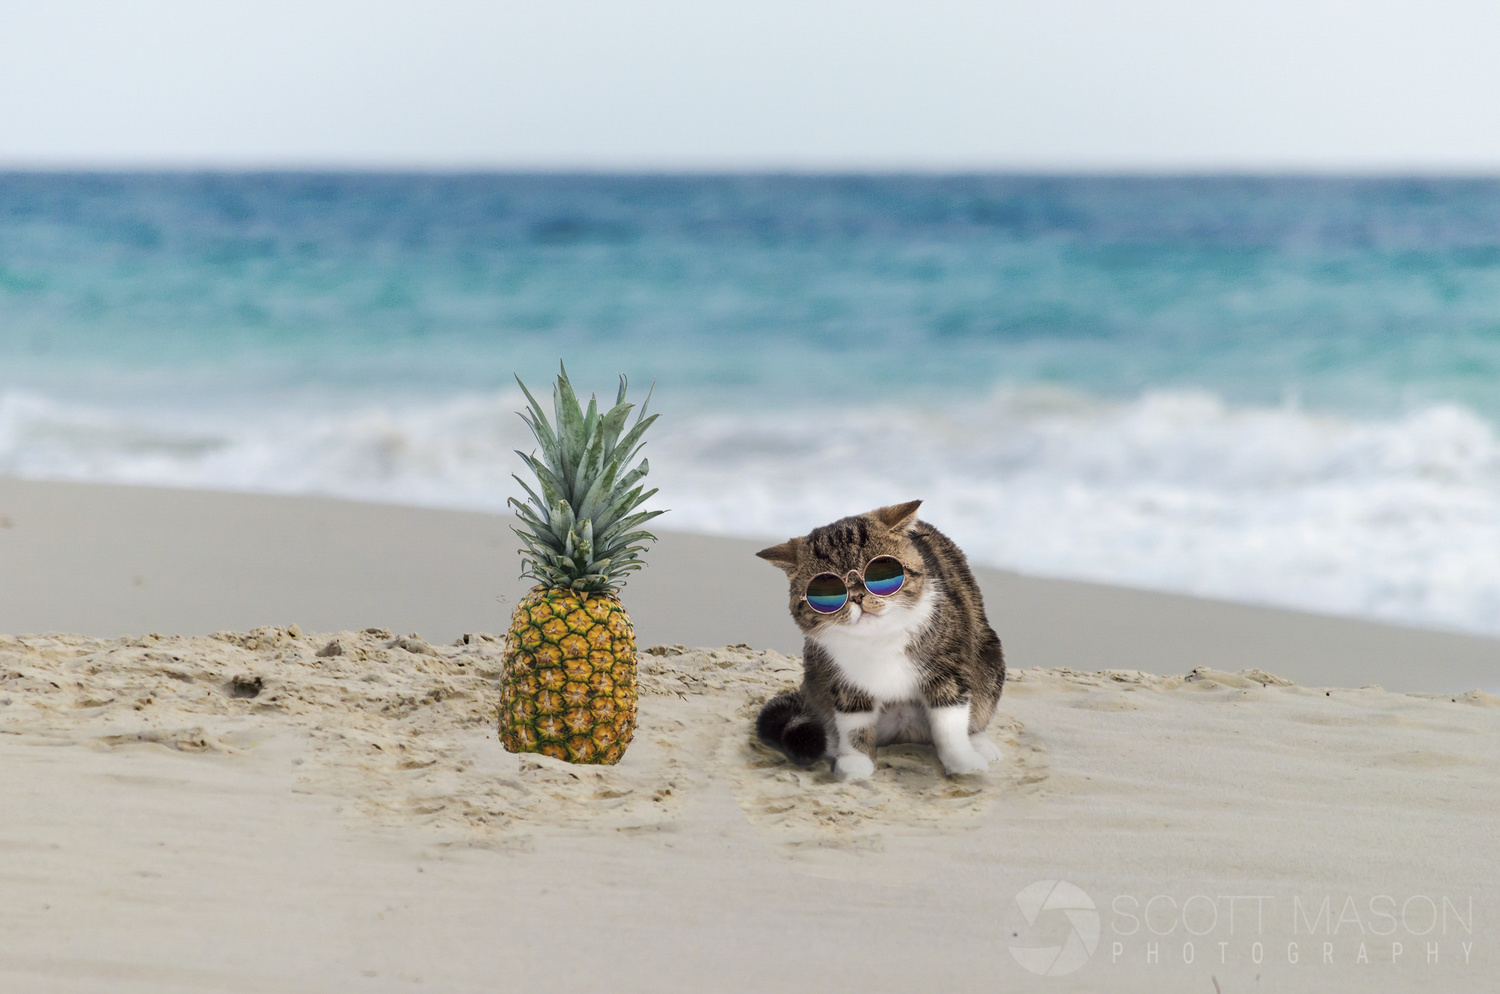 a cat on a beach wearing sunglasses, next to a pineapple